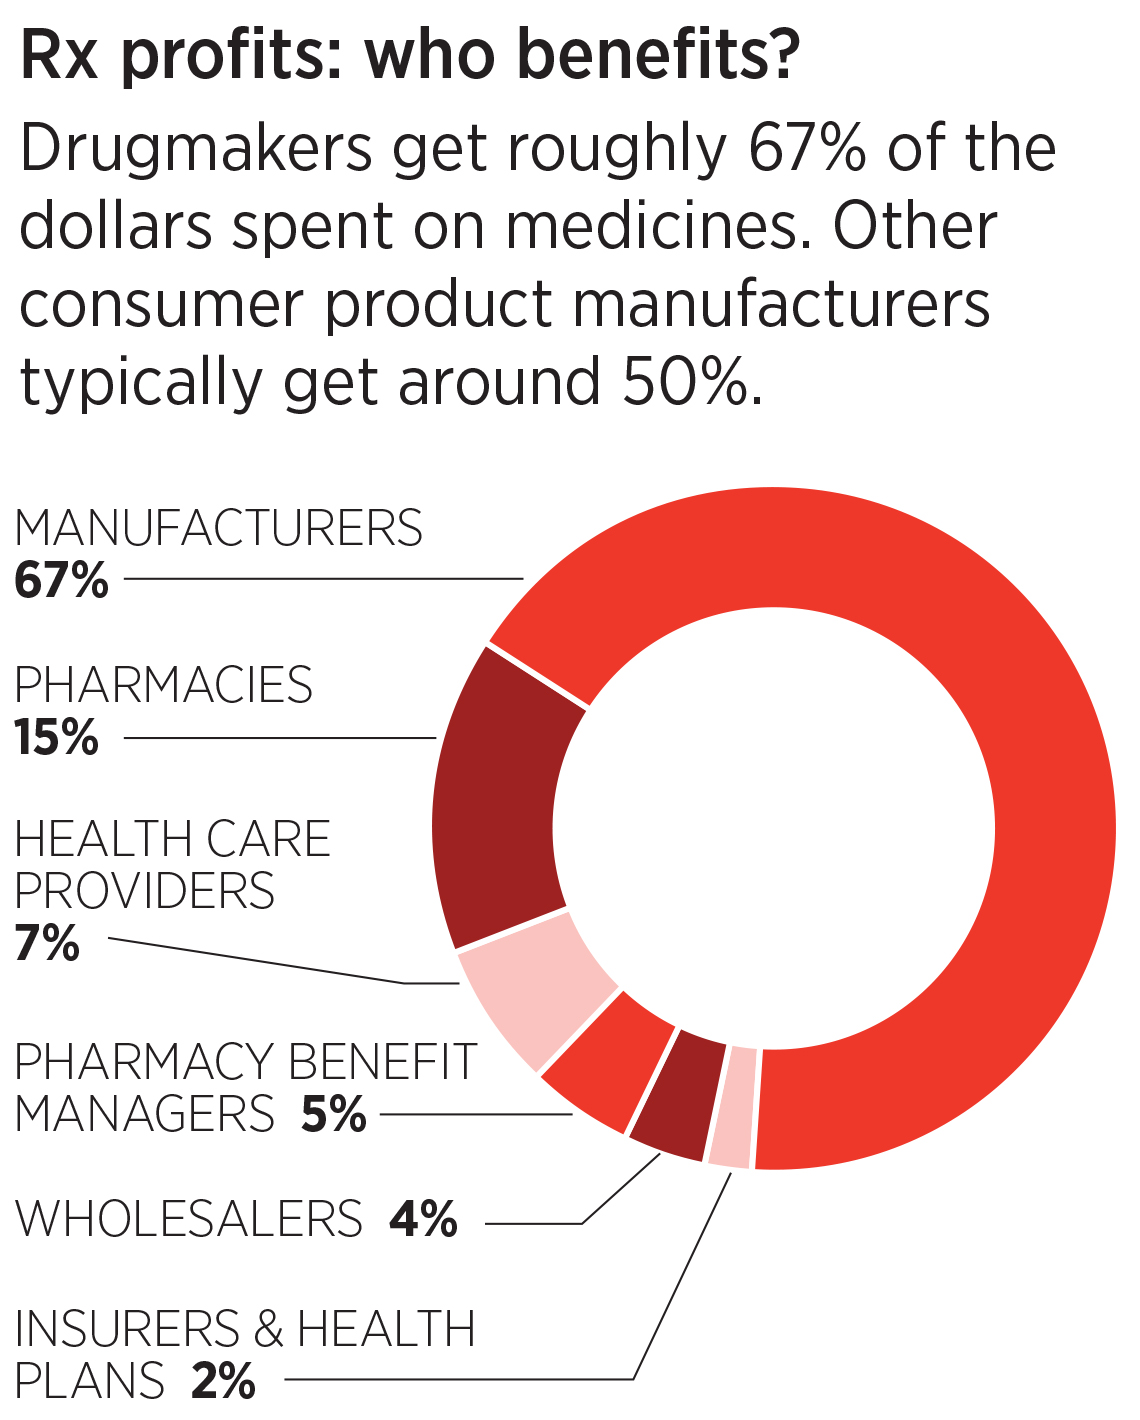 Discounts Coupons Keep Drug Prices High